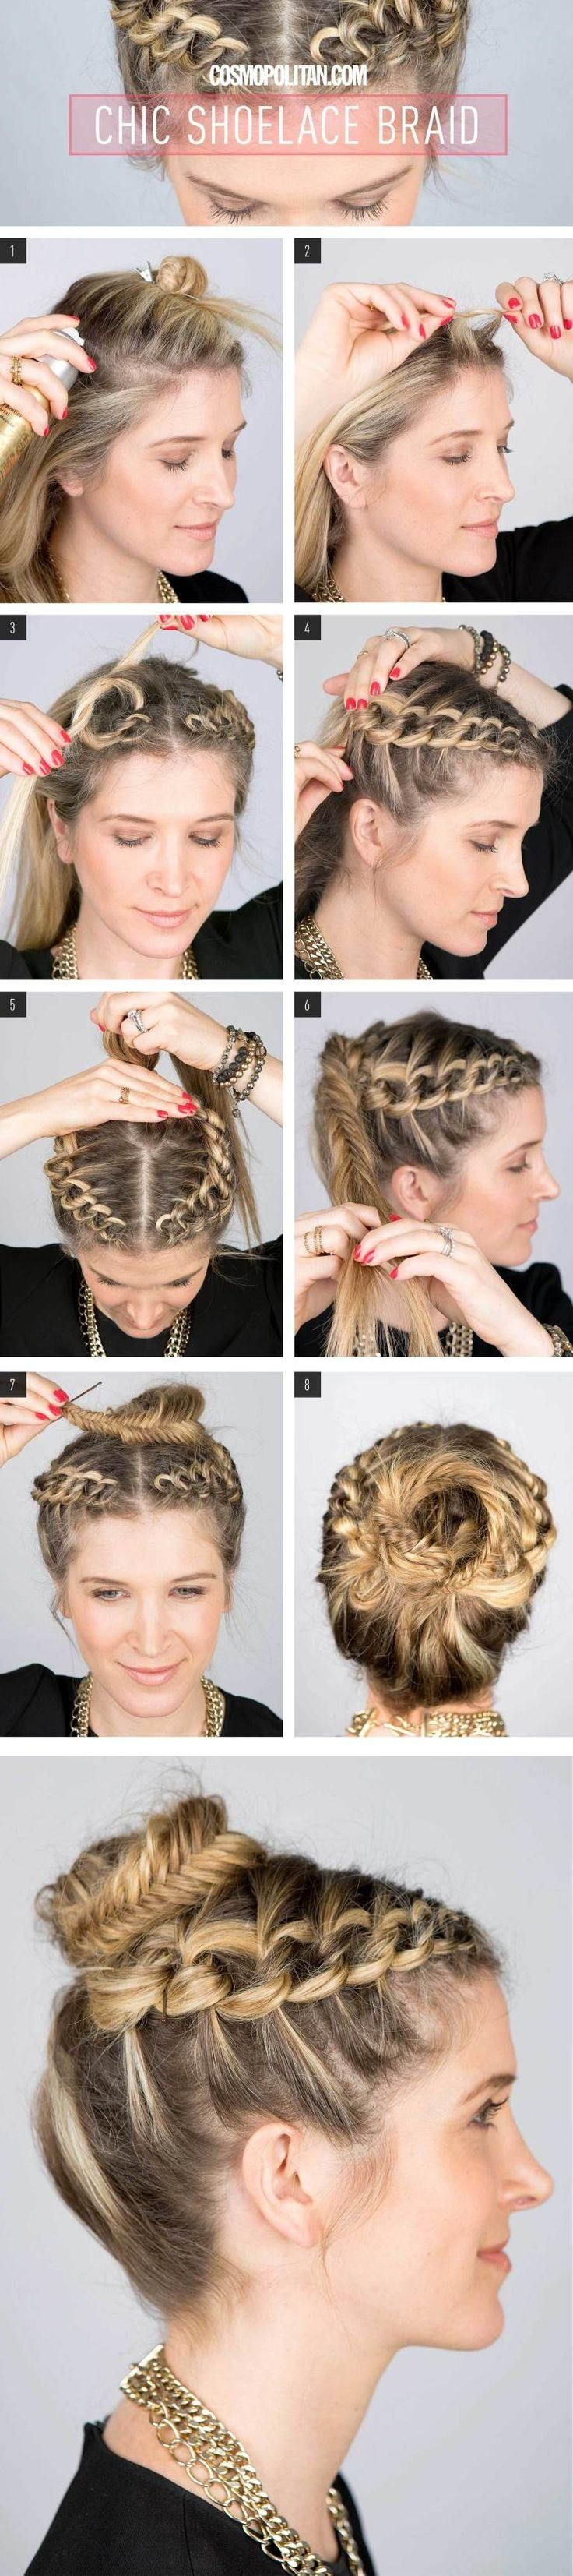 364 best Easy hair images on Pinterest